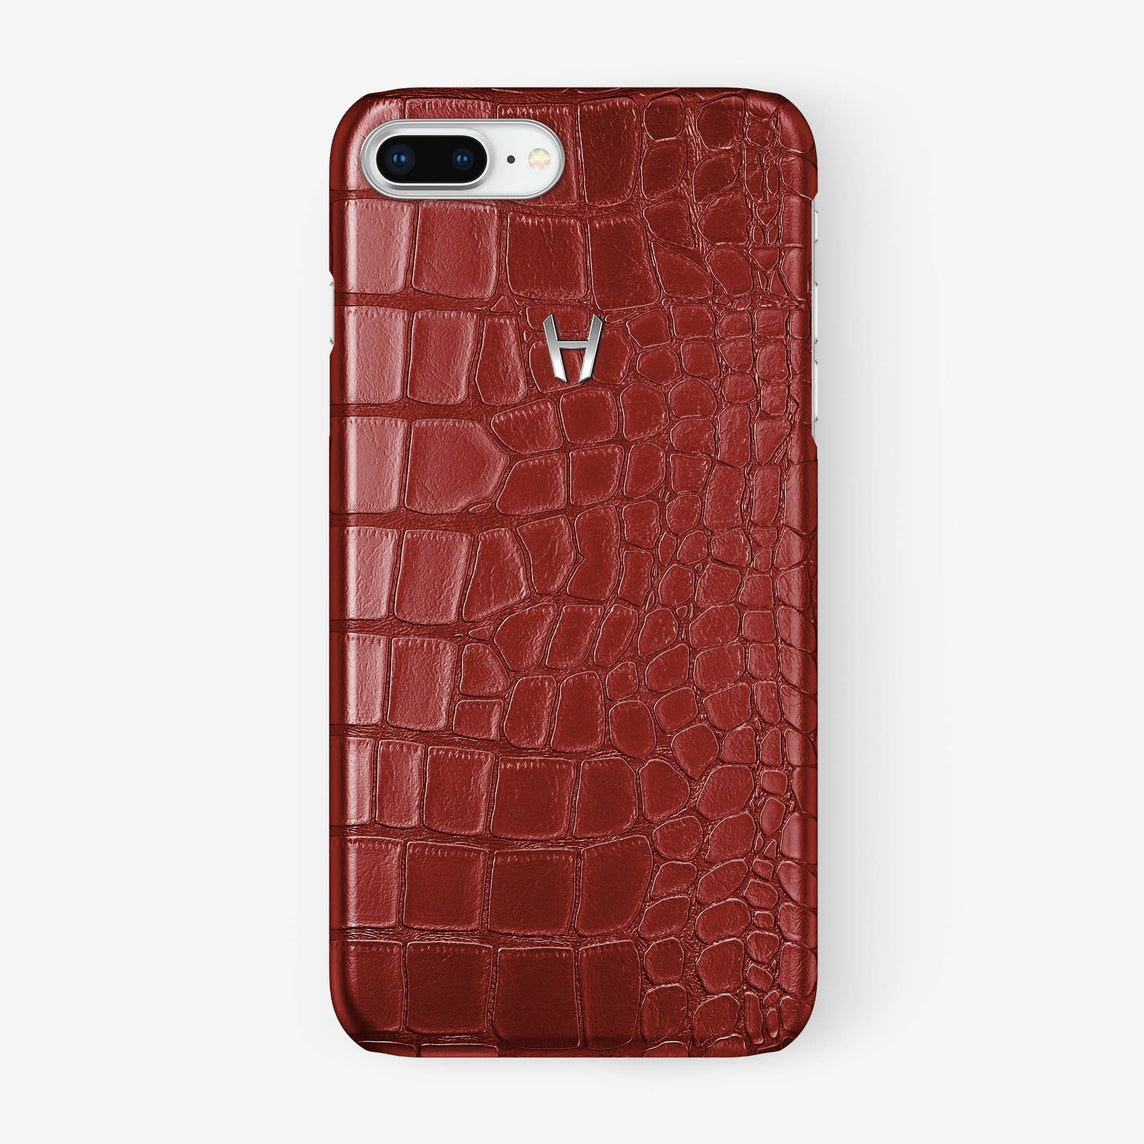 Alligator Case iPhone 7/8 Plus | Red - Stainless Steel